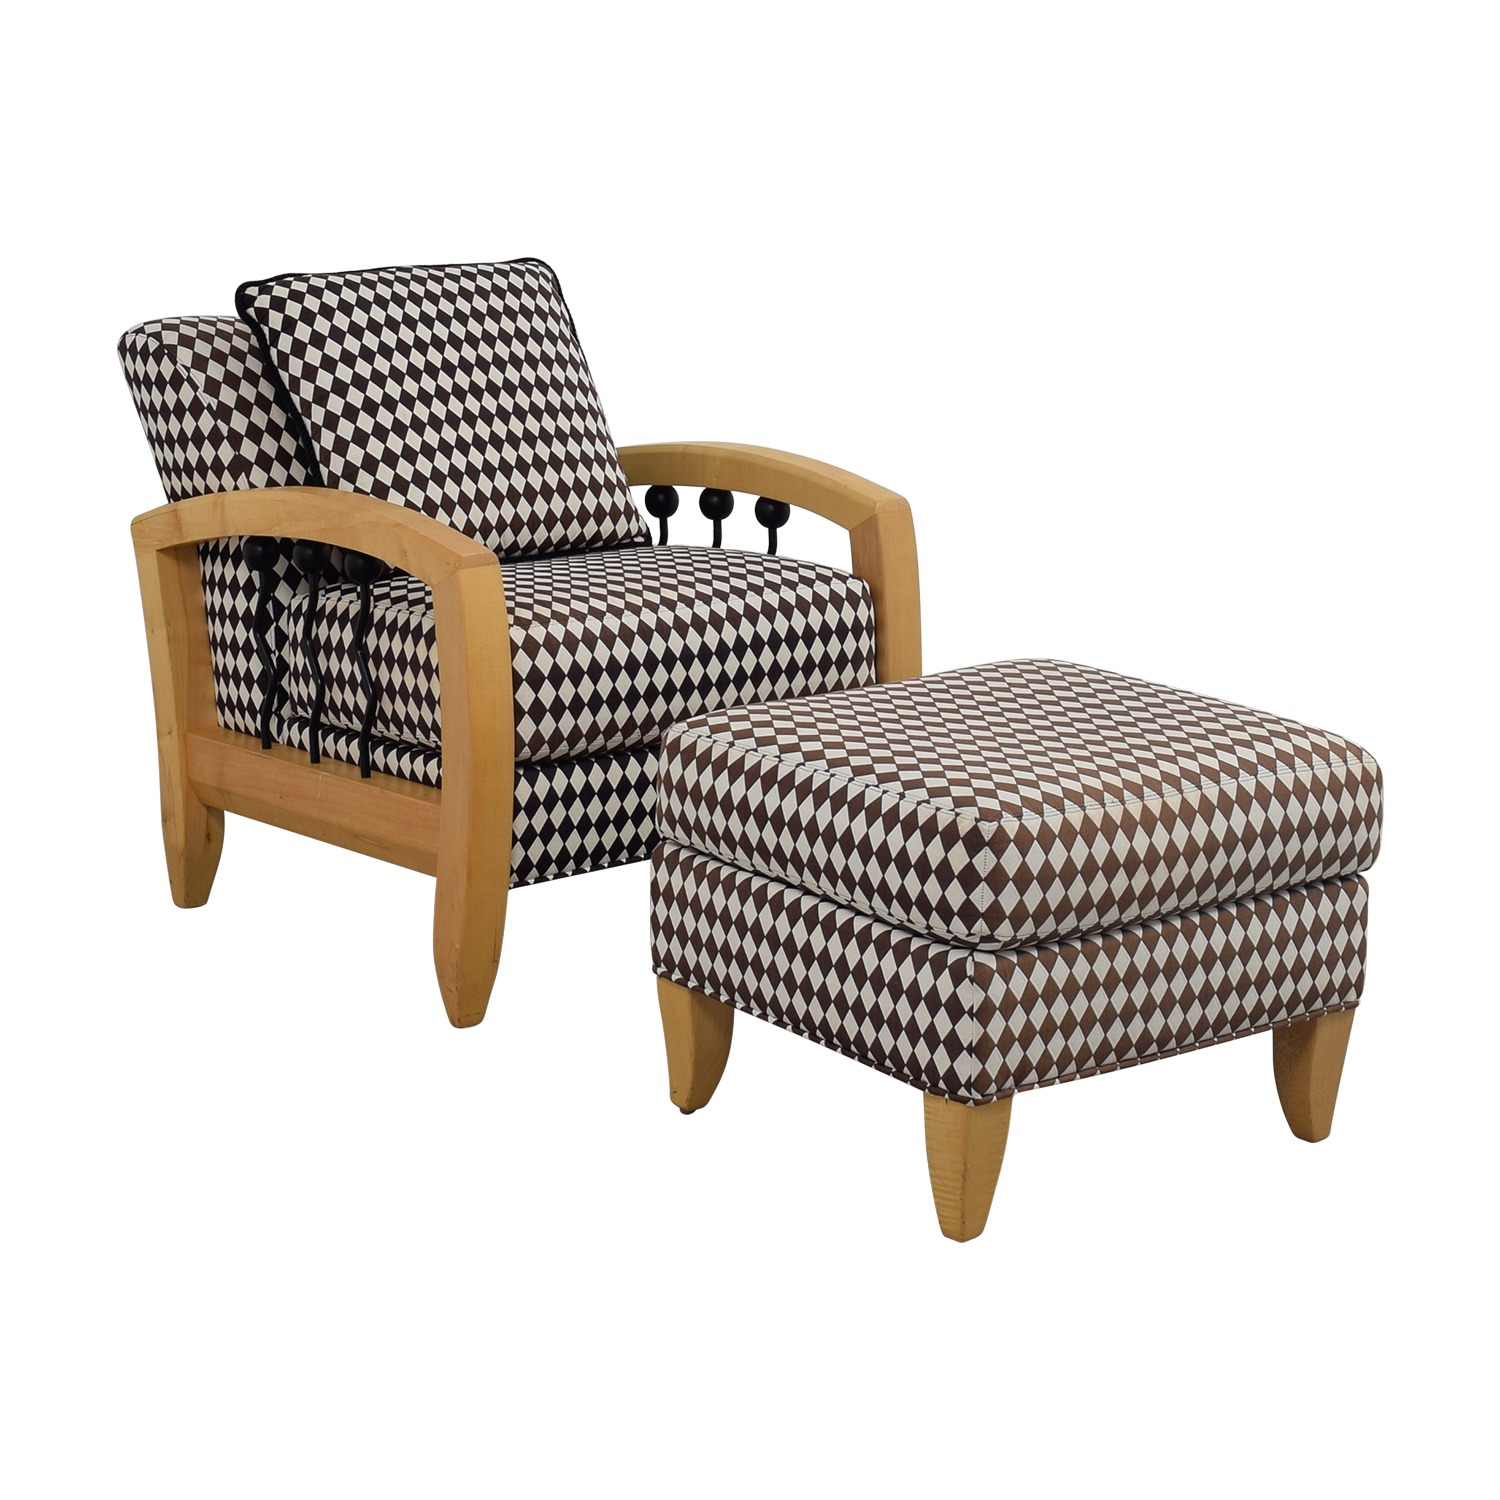 Enjoyable 73 Off Thayer Coggin Thayer Coggin Cherry Wood Black And White Checkered Accent Chair With Ottoman Chairs Theyellowbook Wood Chair Design Ideas Theyellowbookinfo